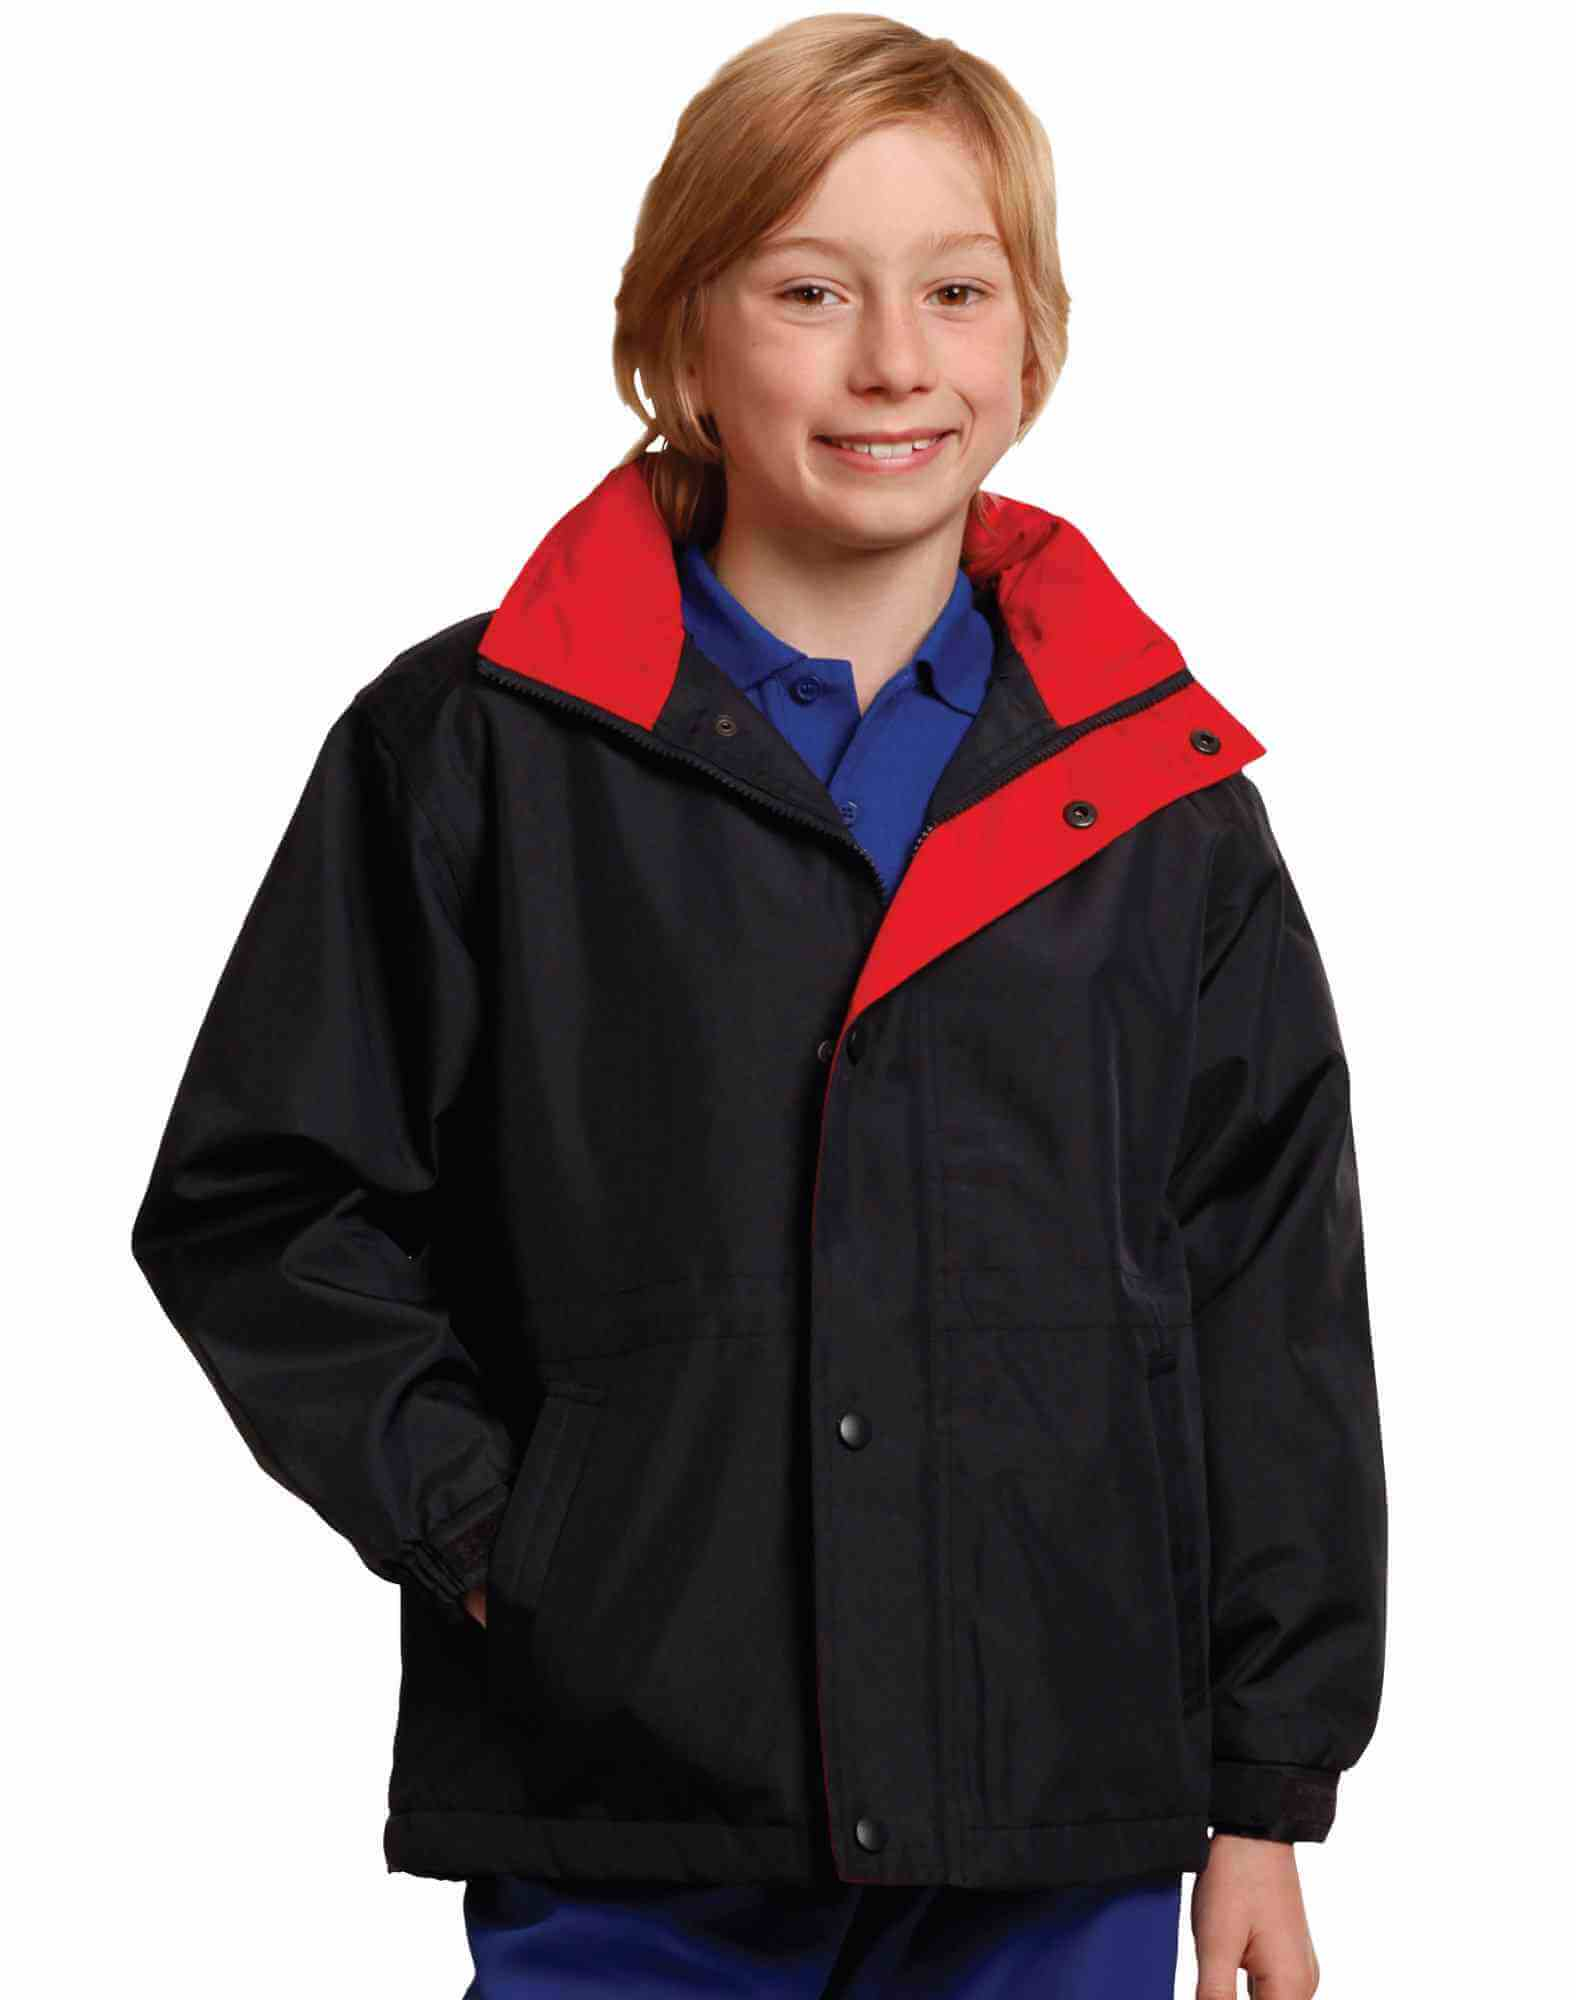 Jk01K Stadium Jacket Kids03 08 2015 10 29 05 - Jk01K Stadium Jacket Kids